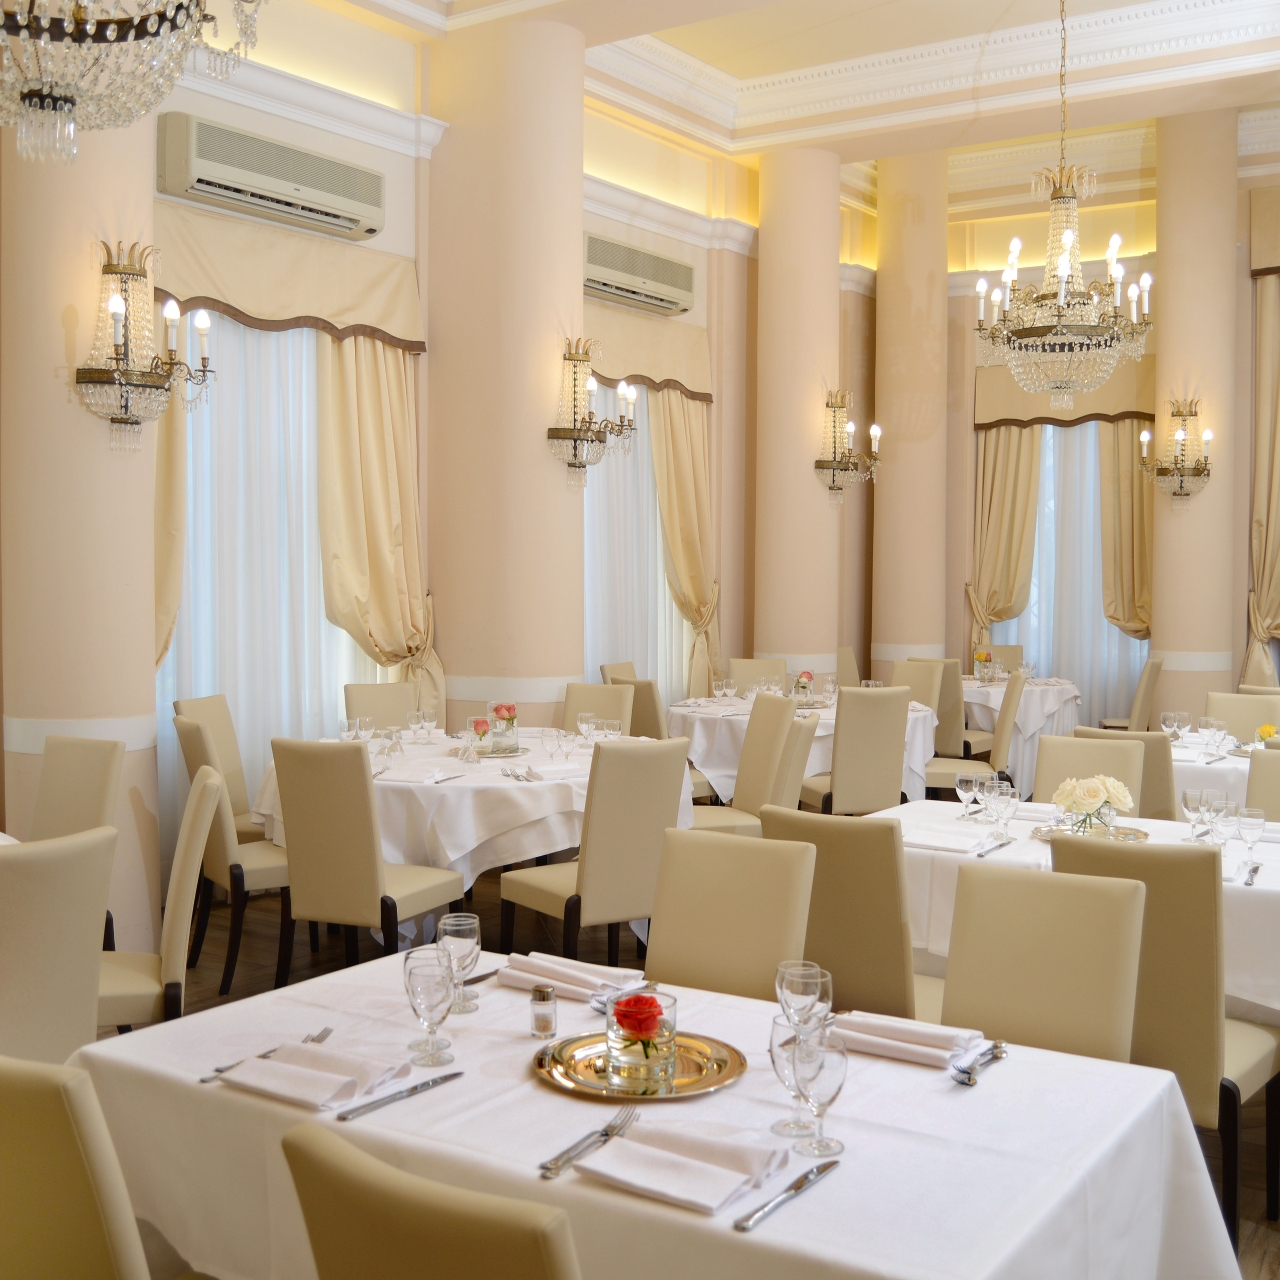 Grand Hotel Vittoria Italy At Hrs With Free Services